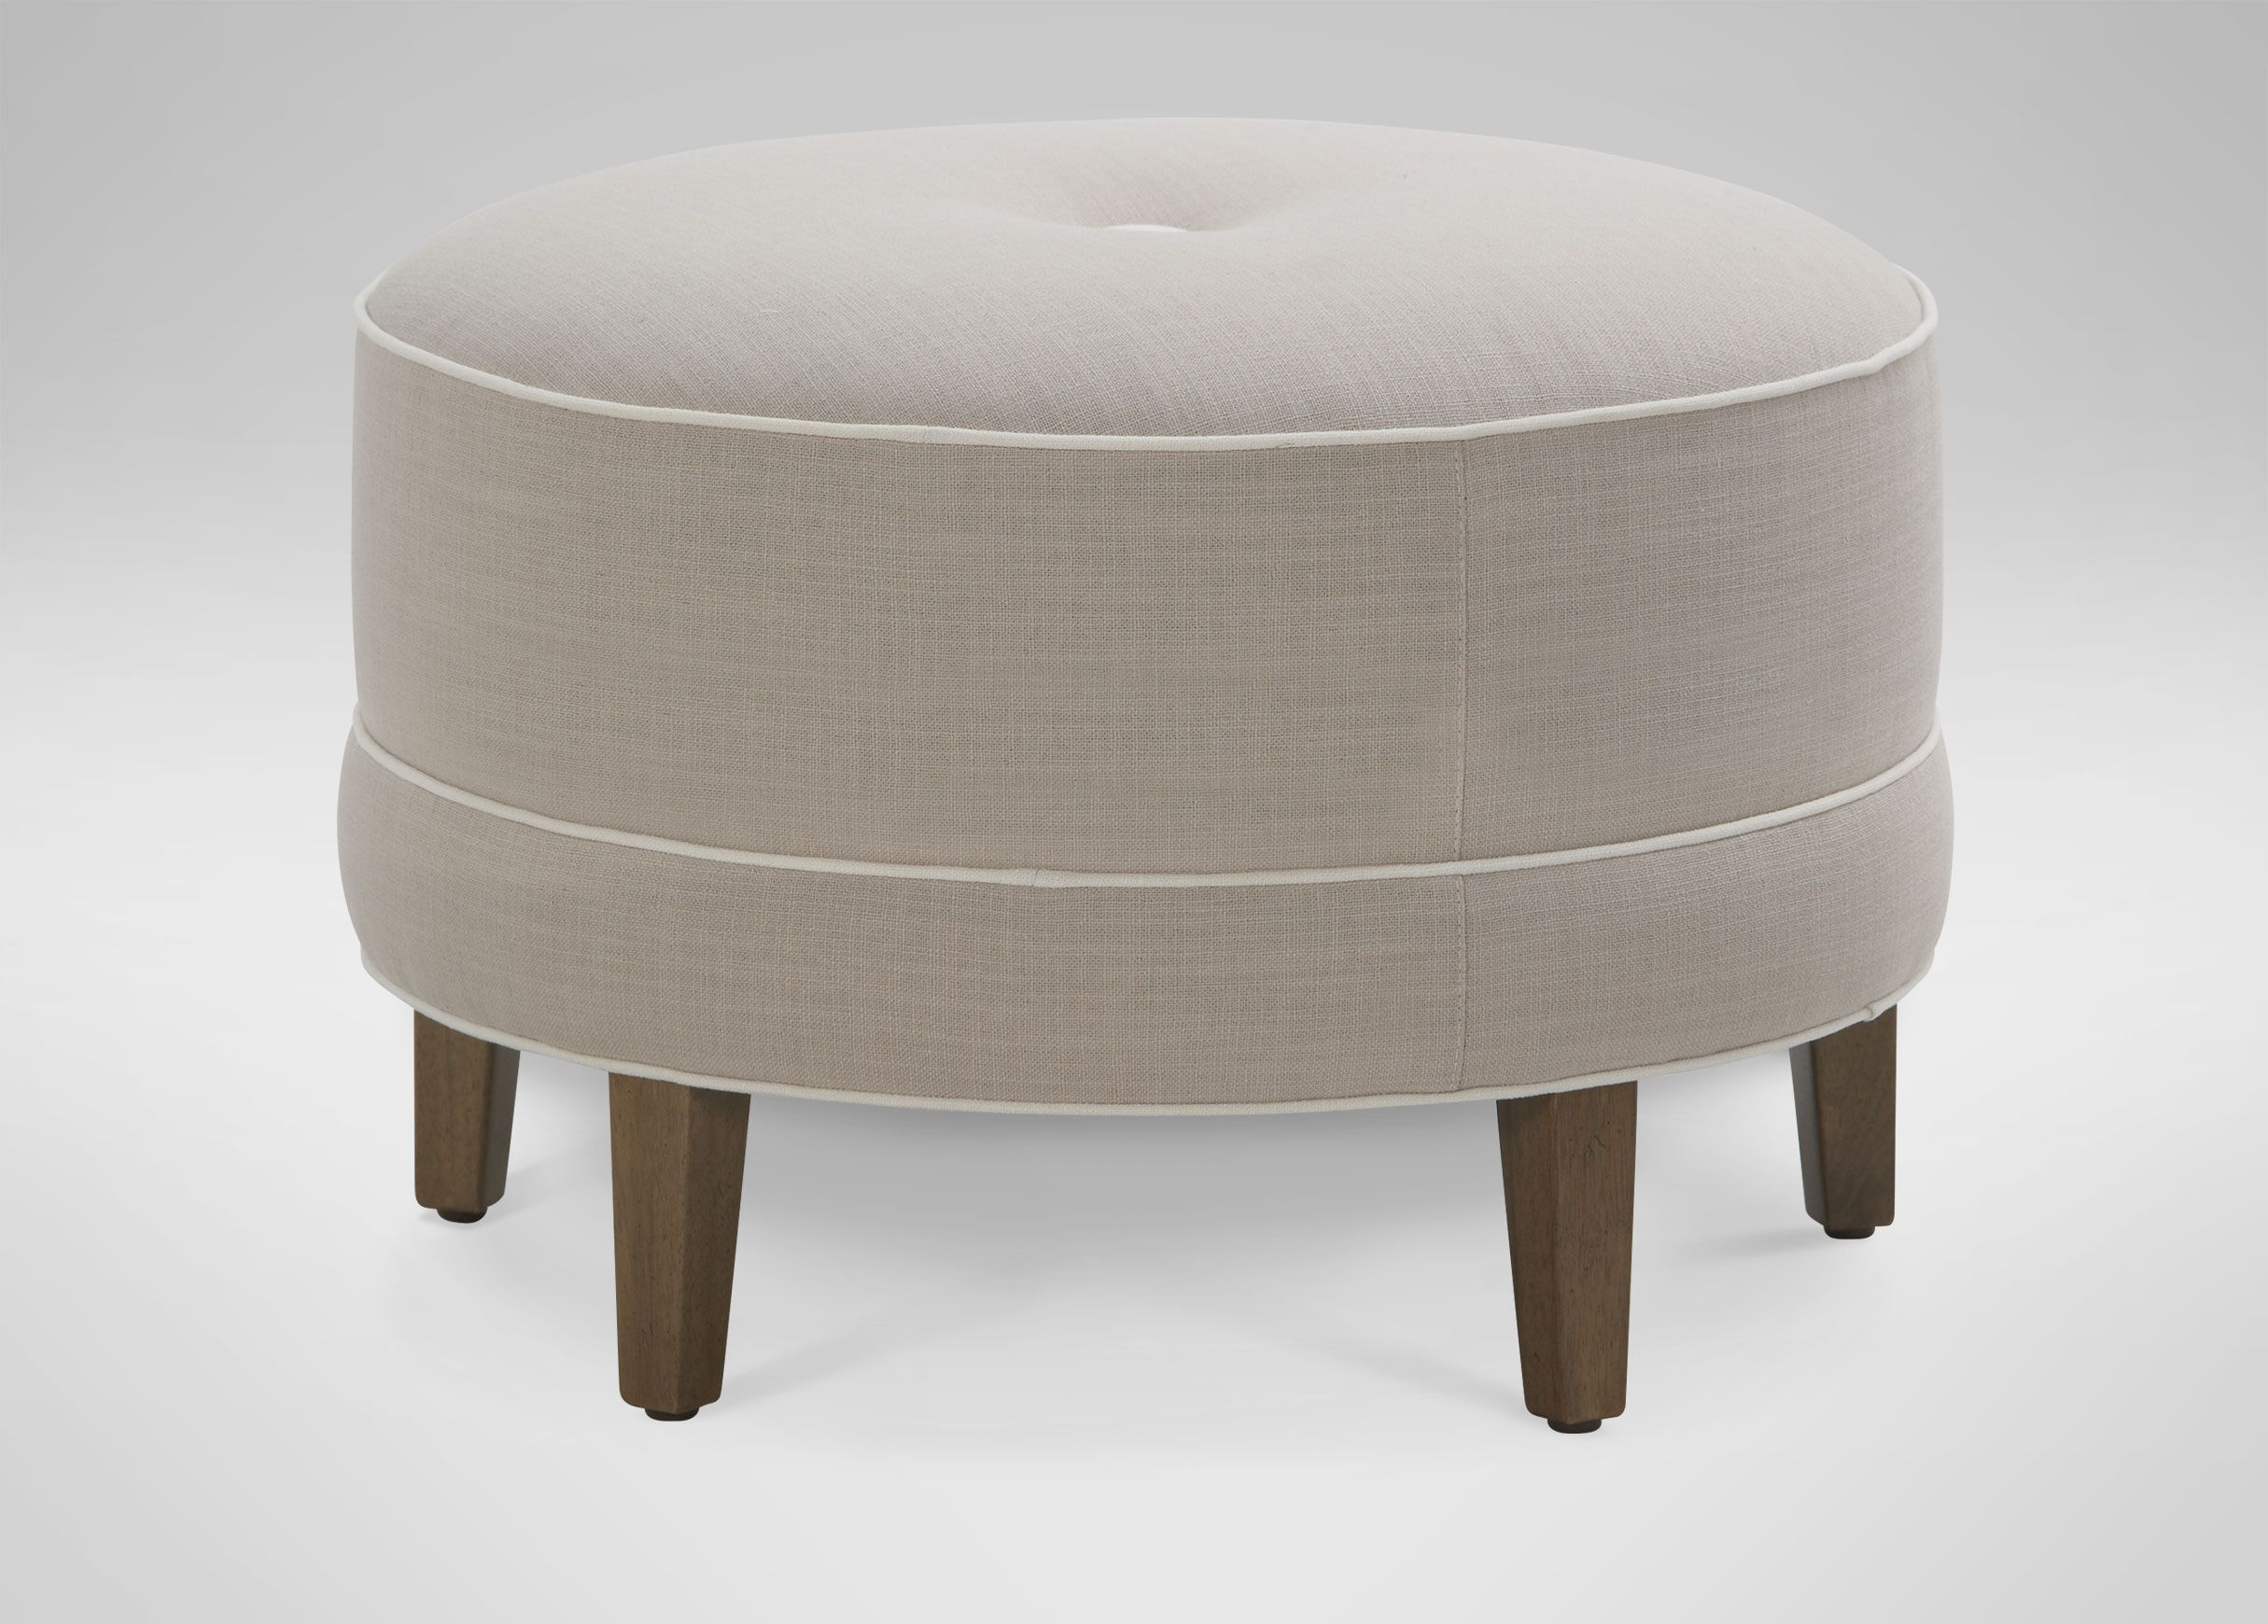 range pouf shipping today garden cowhide free overstock home cube inch cattle ottoman leather product